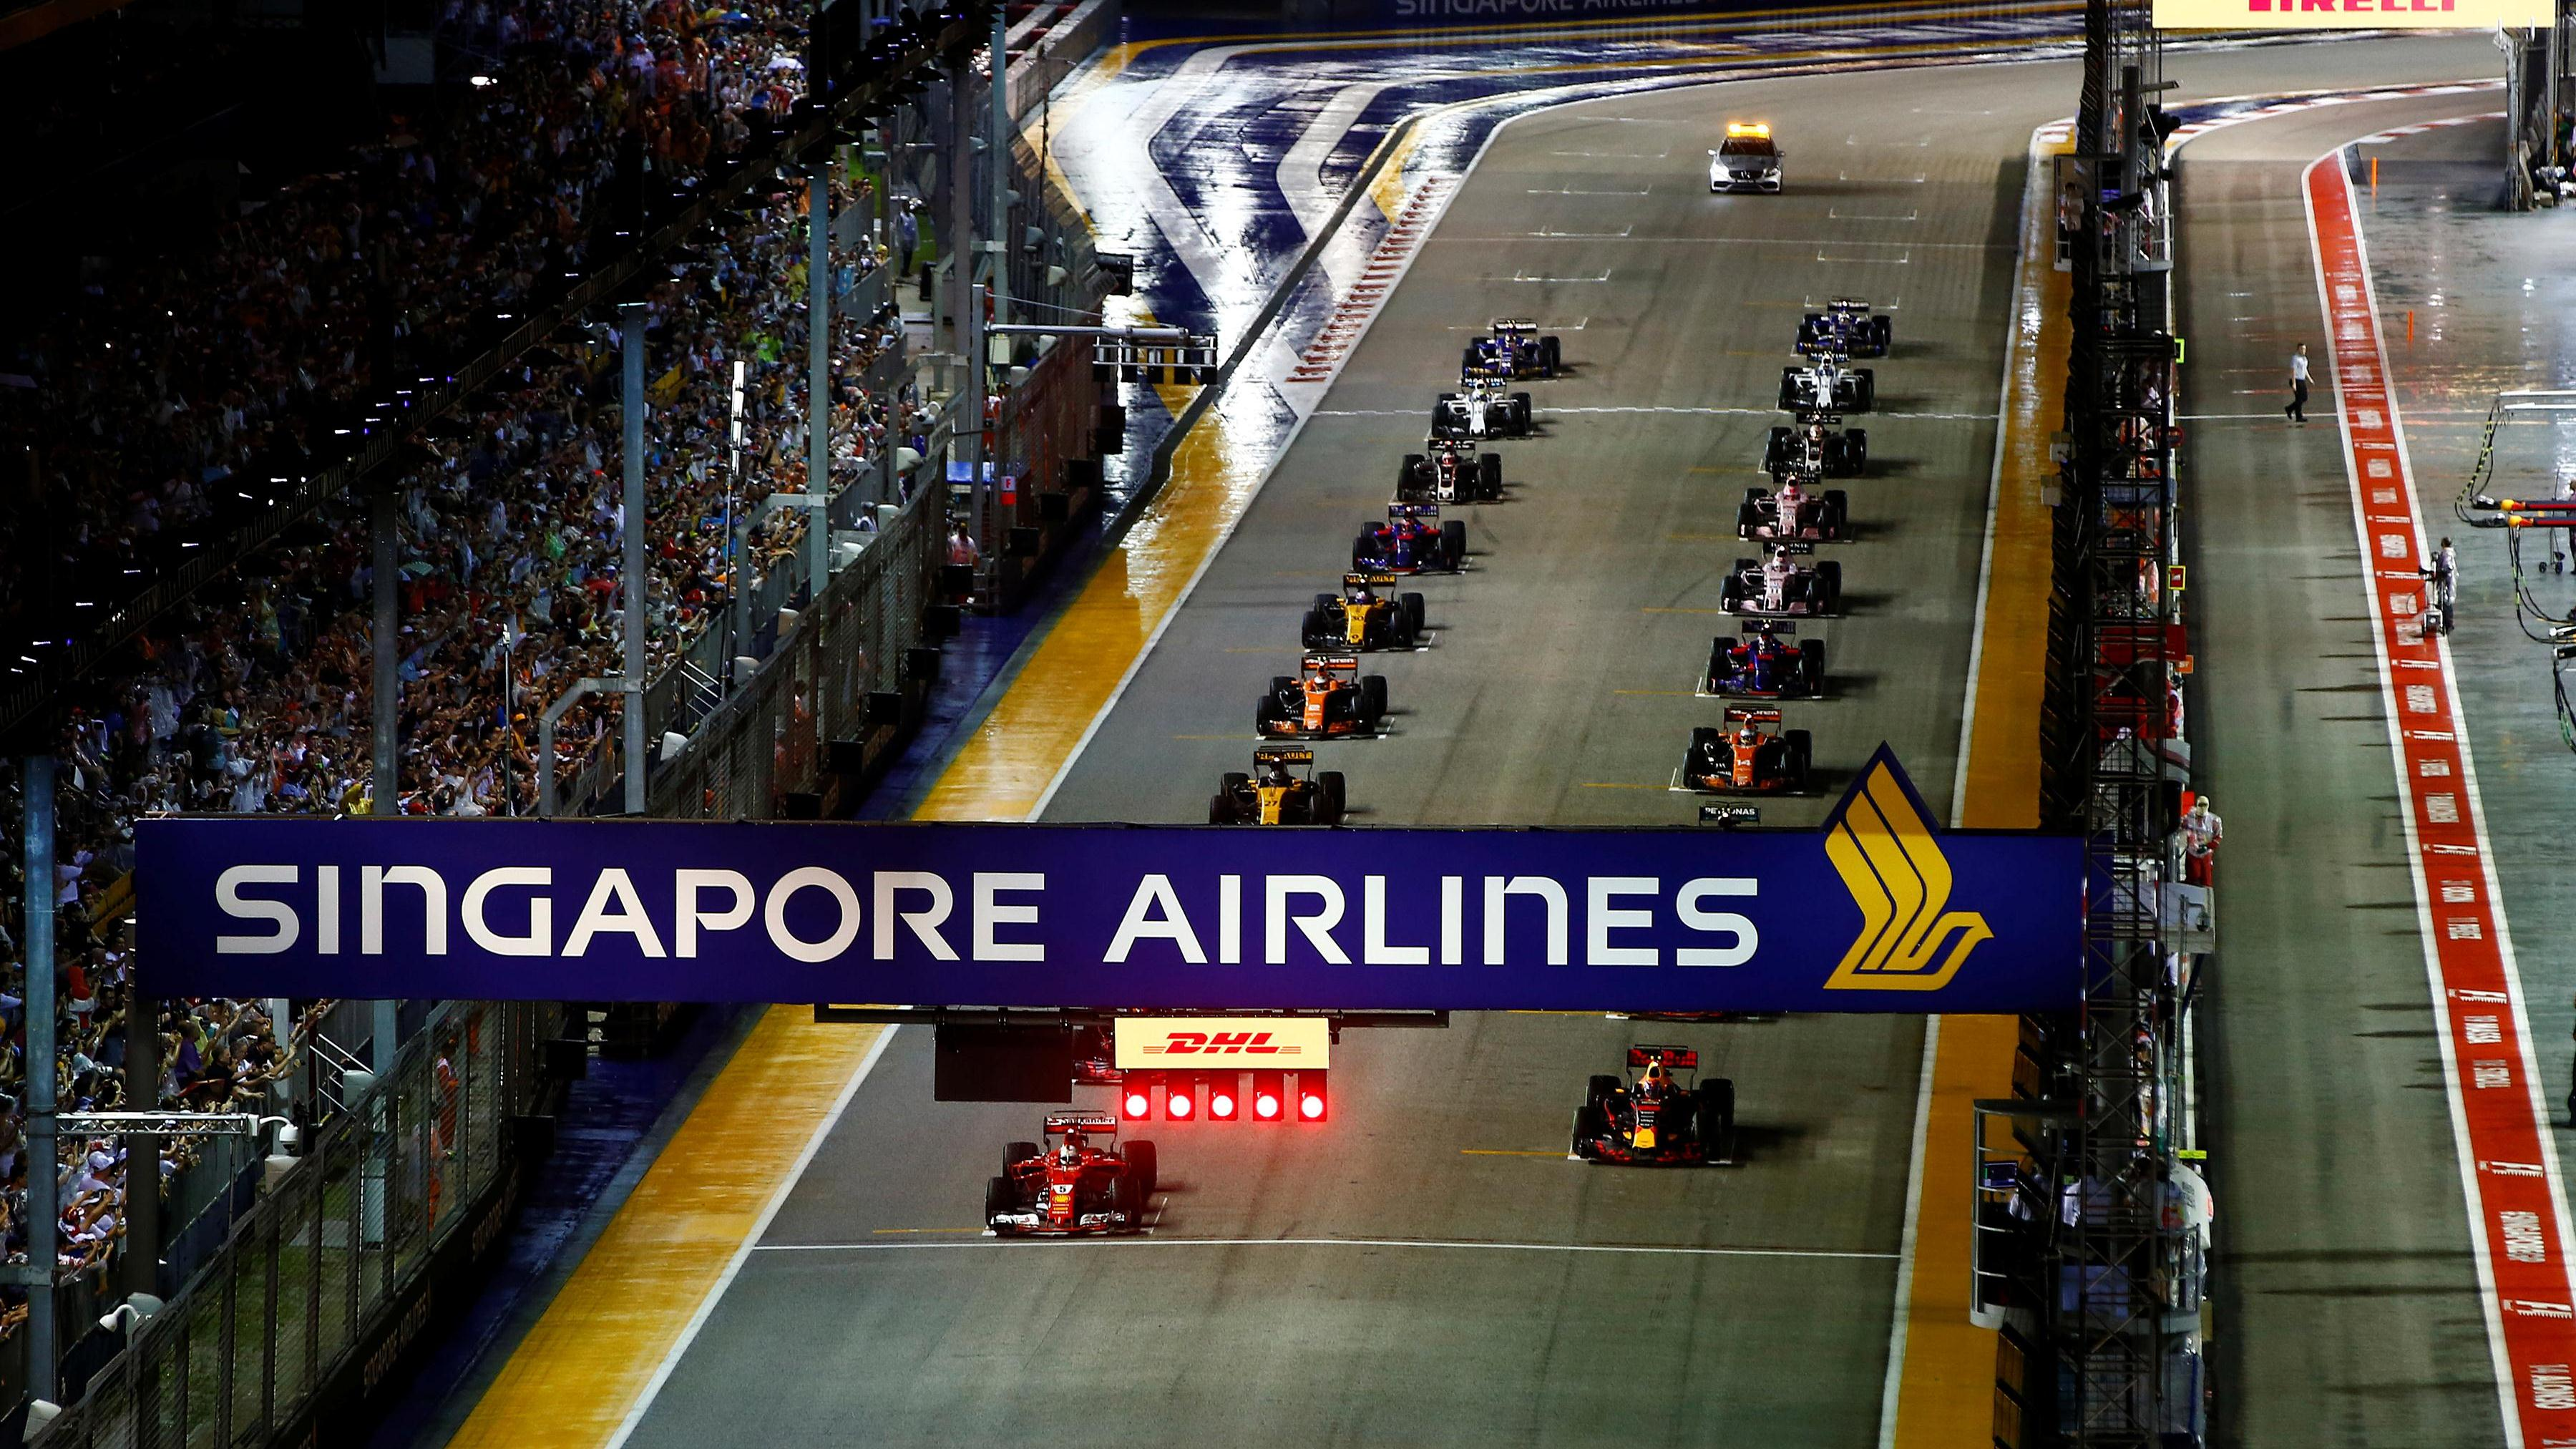 SINGAPORE PREVIEW: The stats and info you need to know